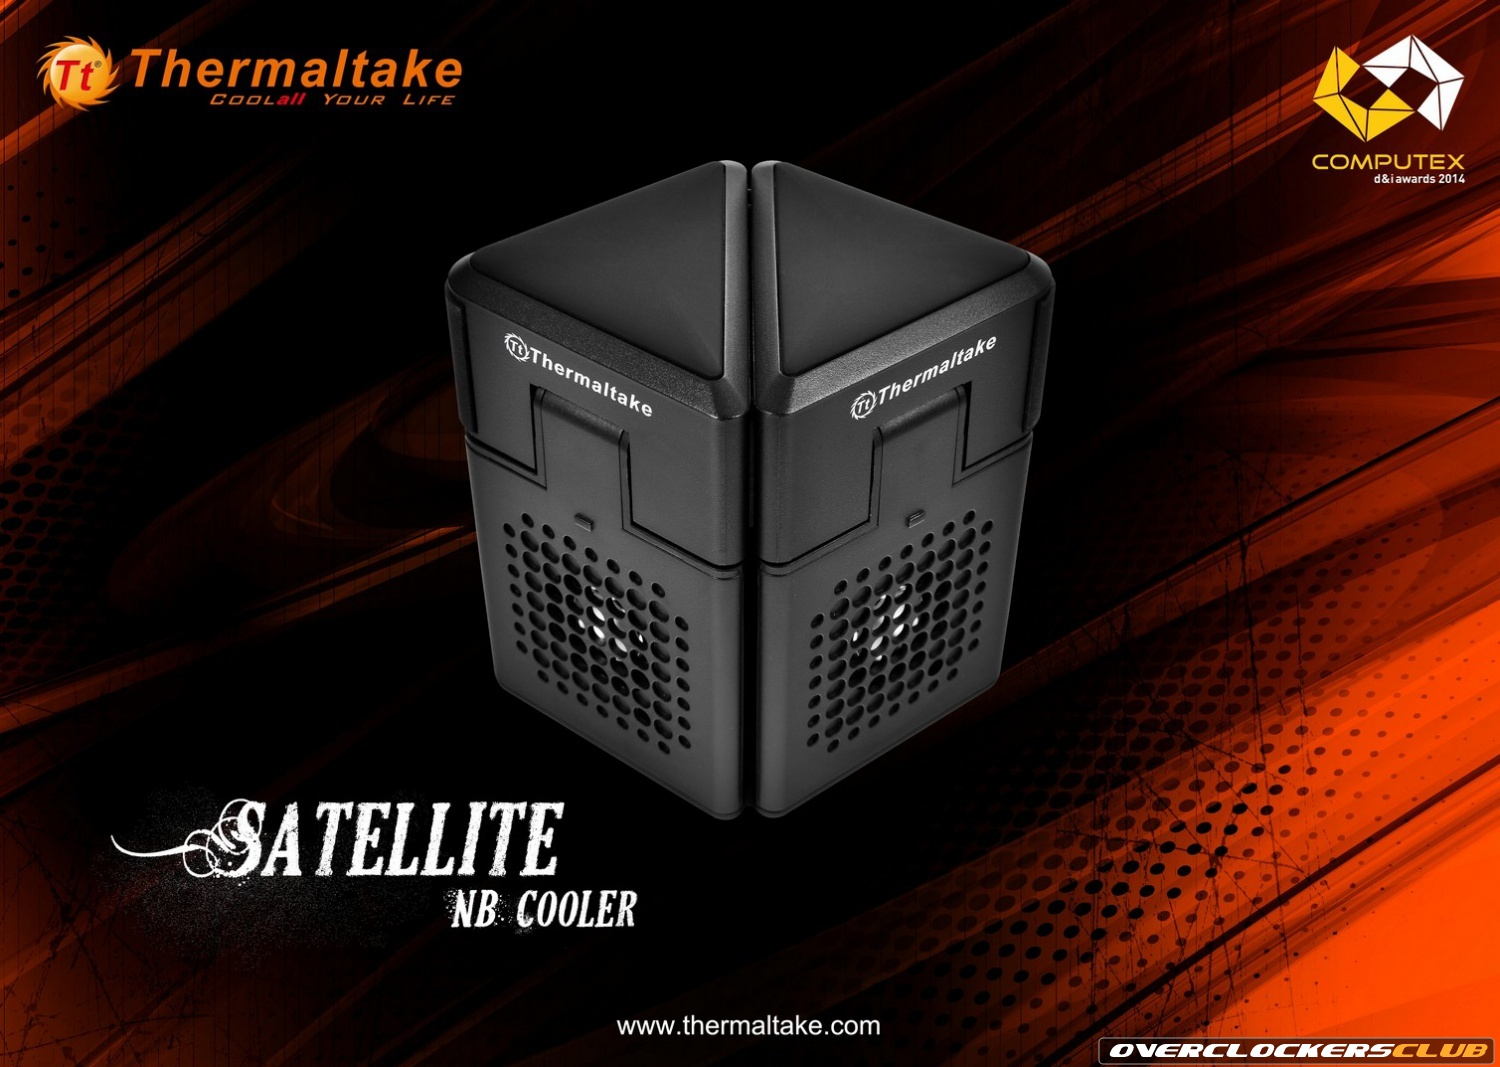 Thermaltake Celebrating its 15th Anniversary in Style at Computex